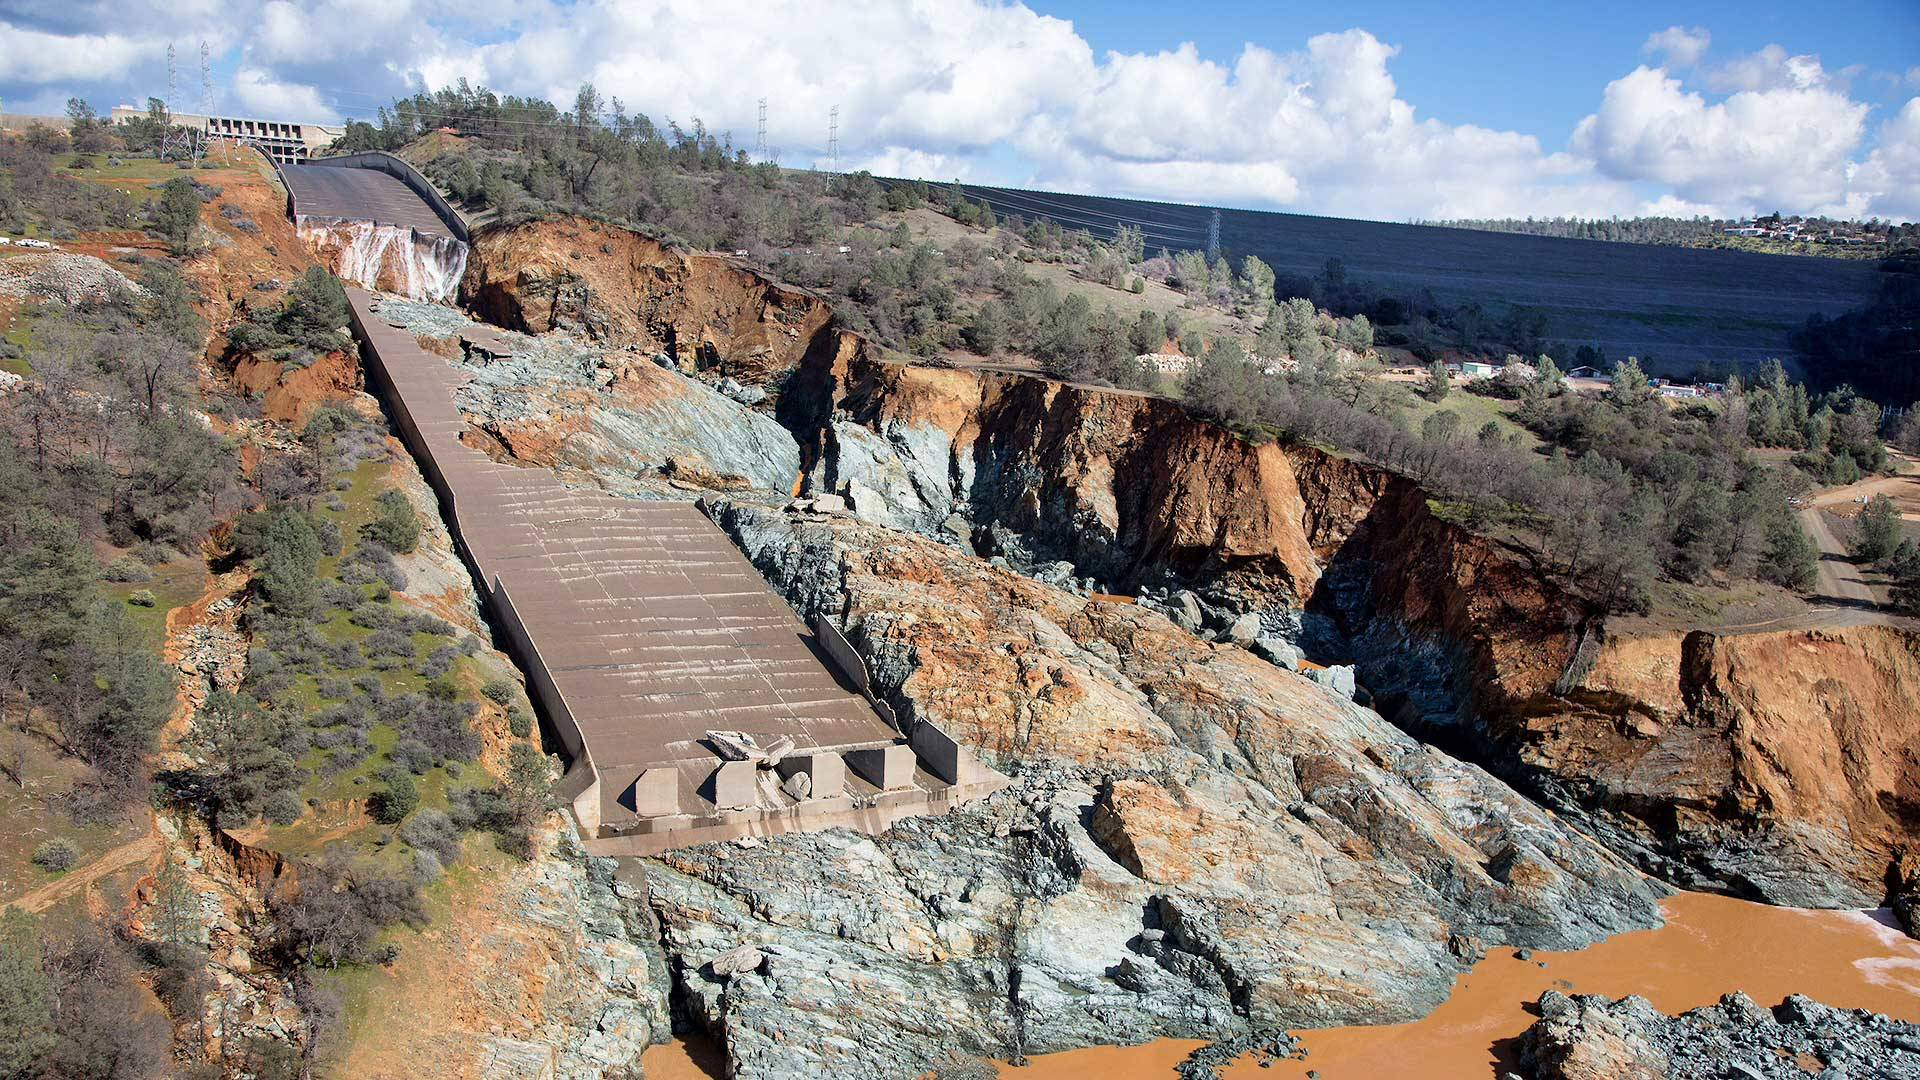 The damaged concrete main spillway at Oroville Dam. CA Department of Water Resources